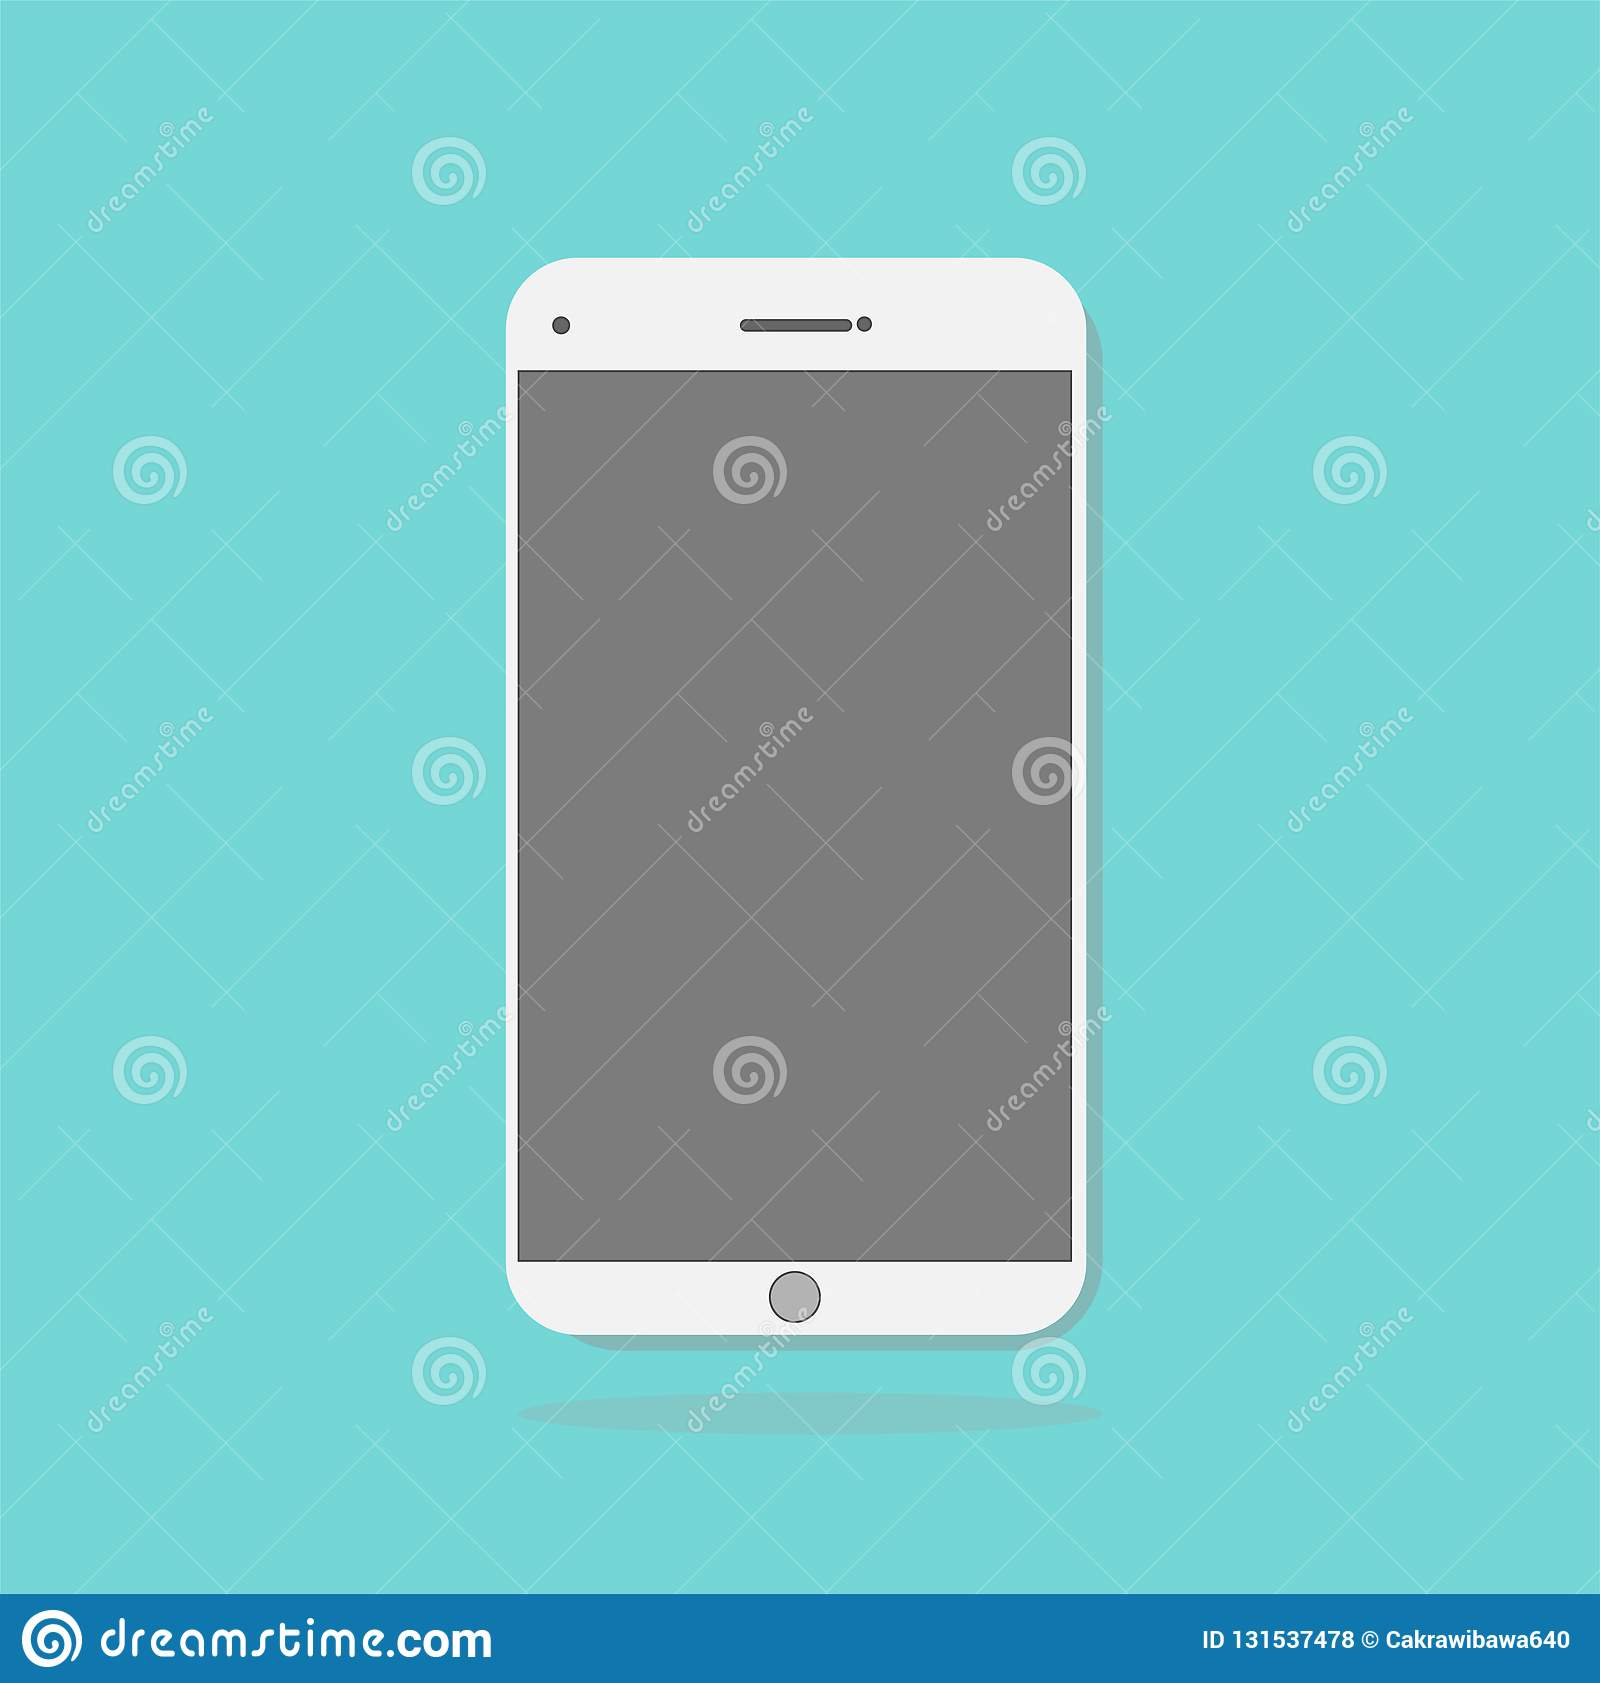 Smartphone Icon In The Style Flat Design On The Blue ...